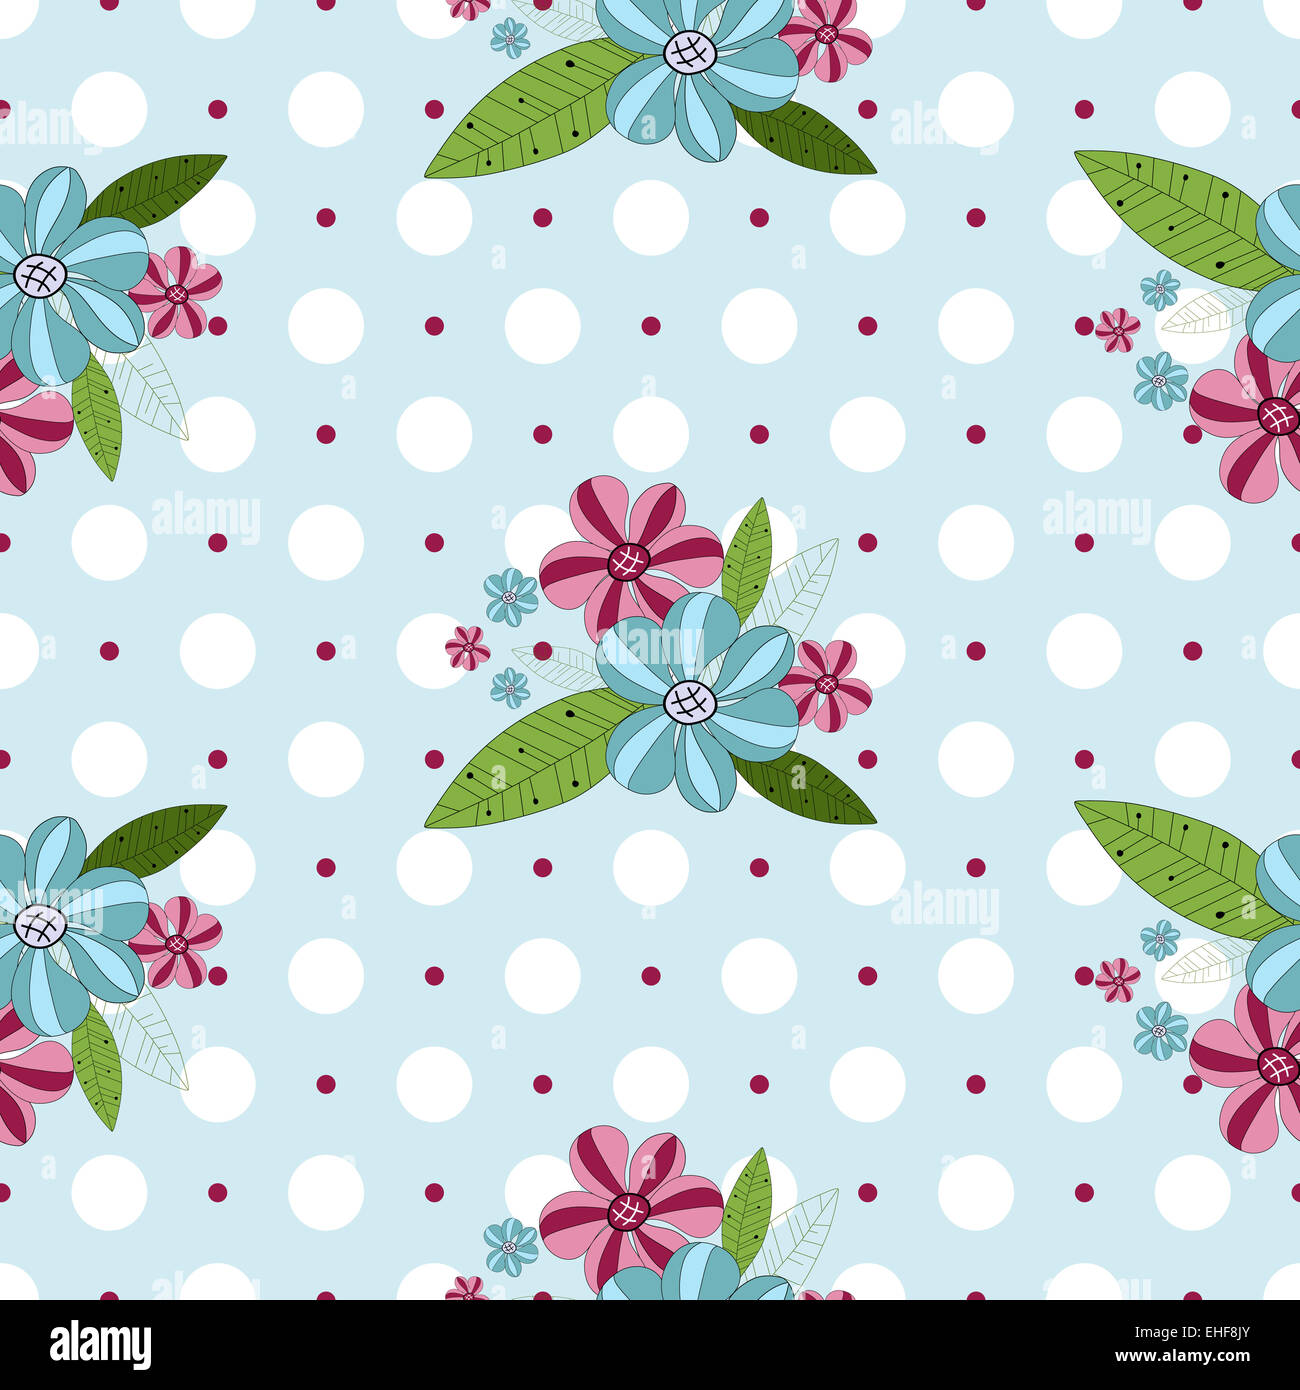 Seamless gentle floral pattern - Stock Image